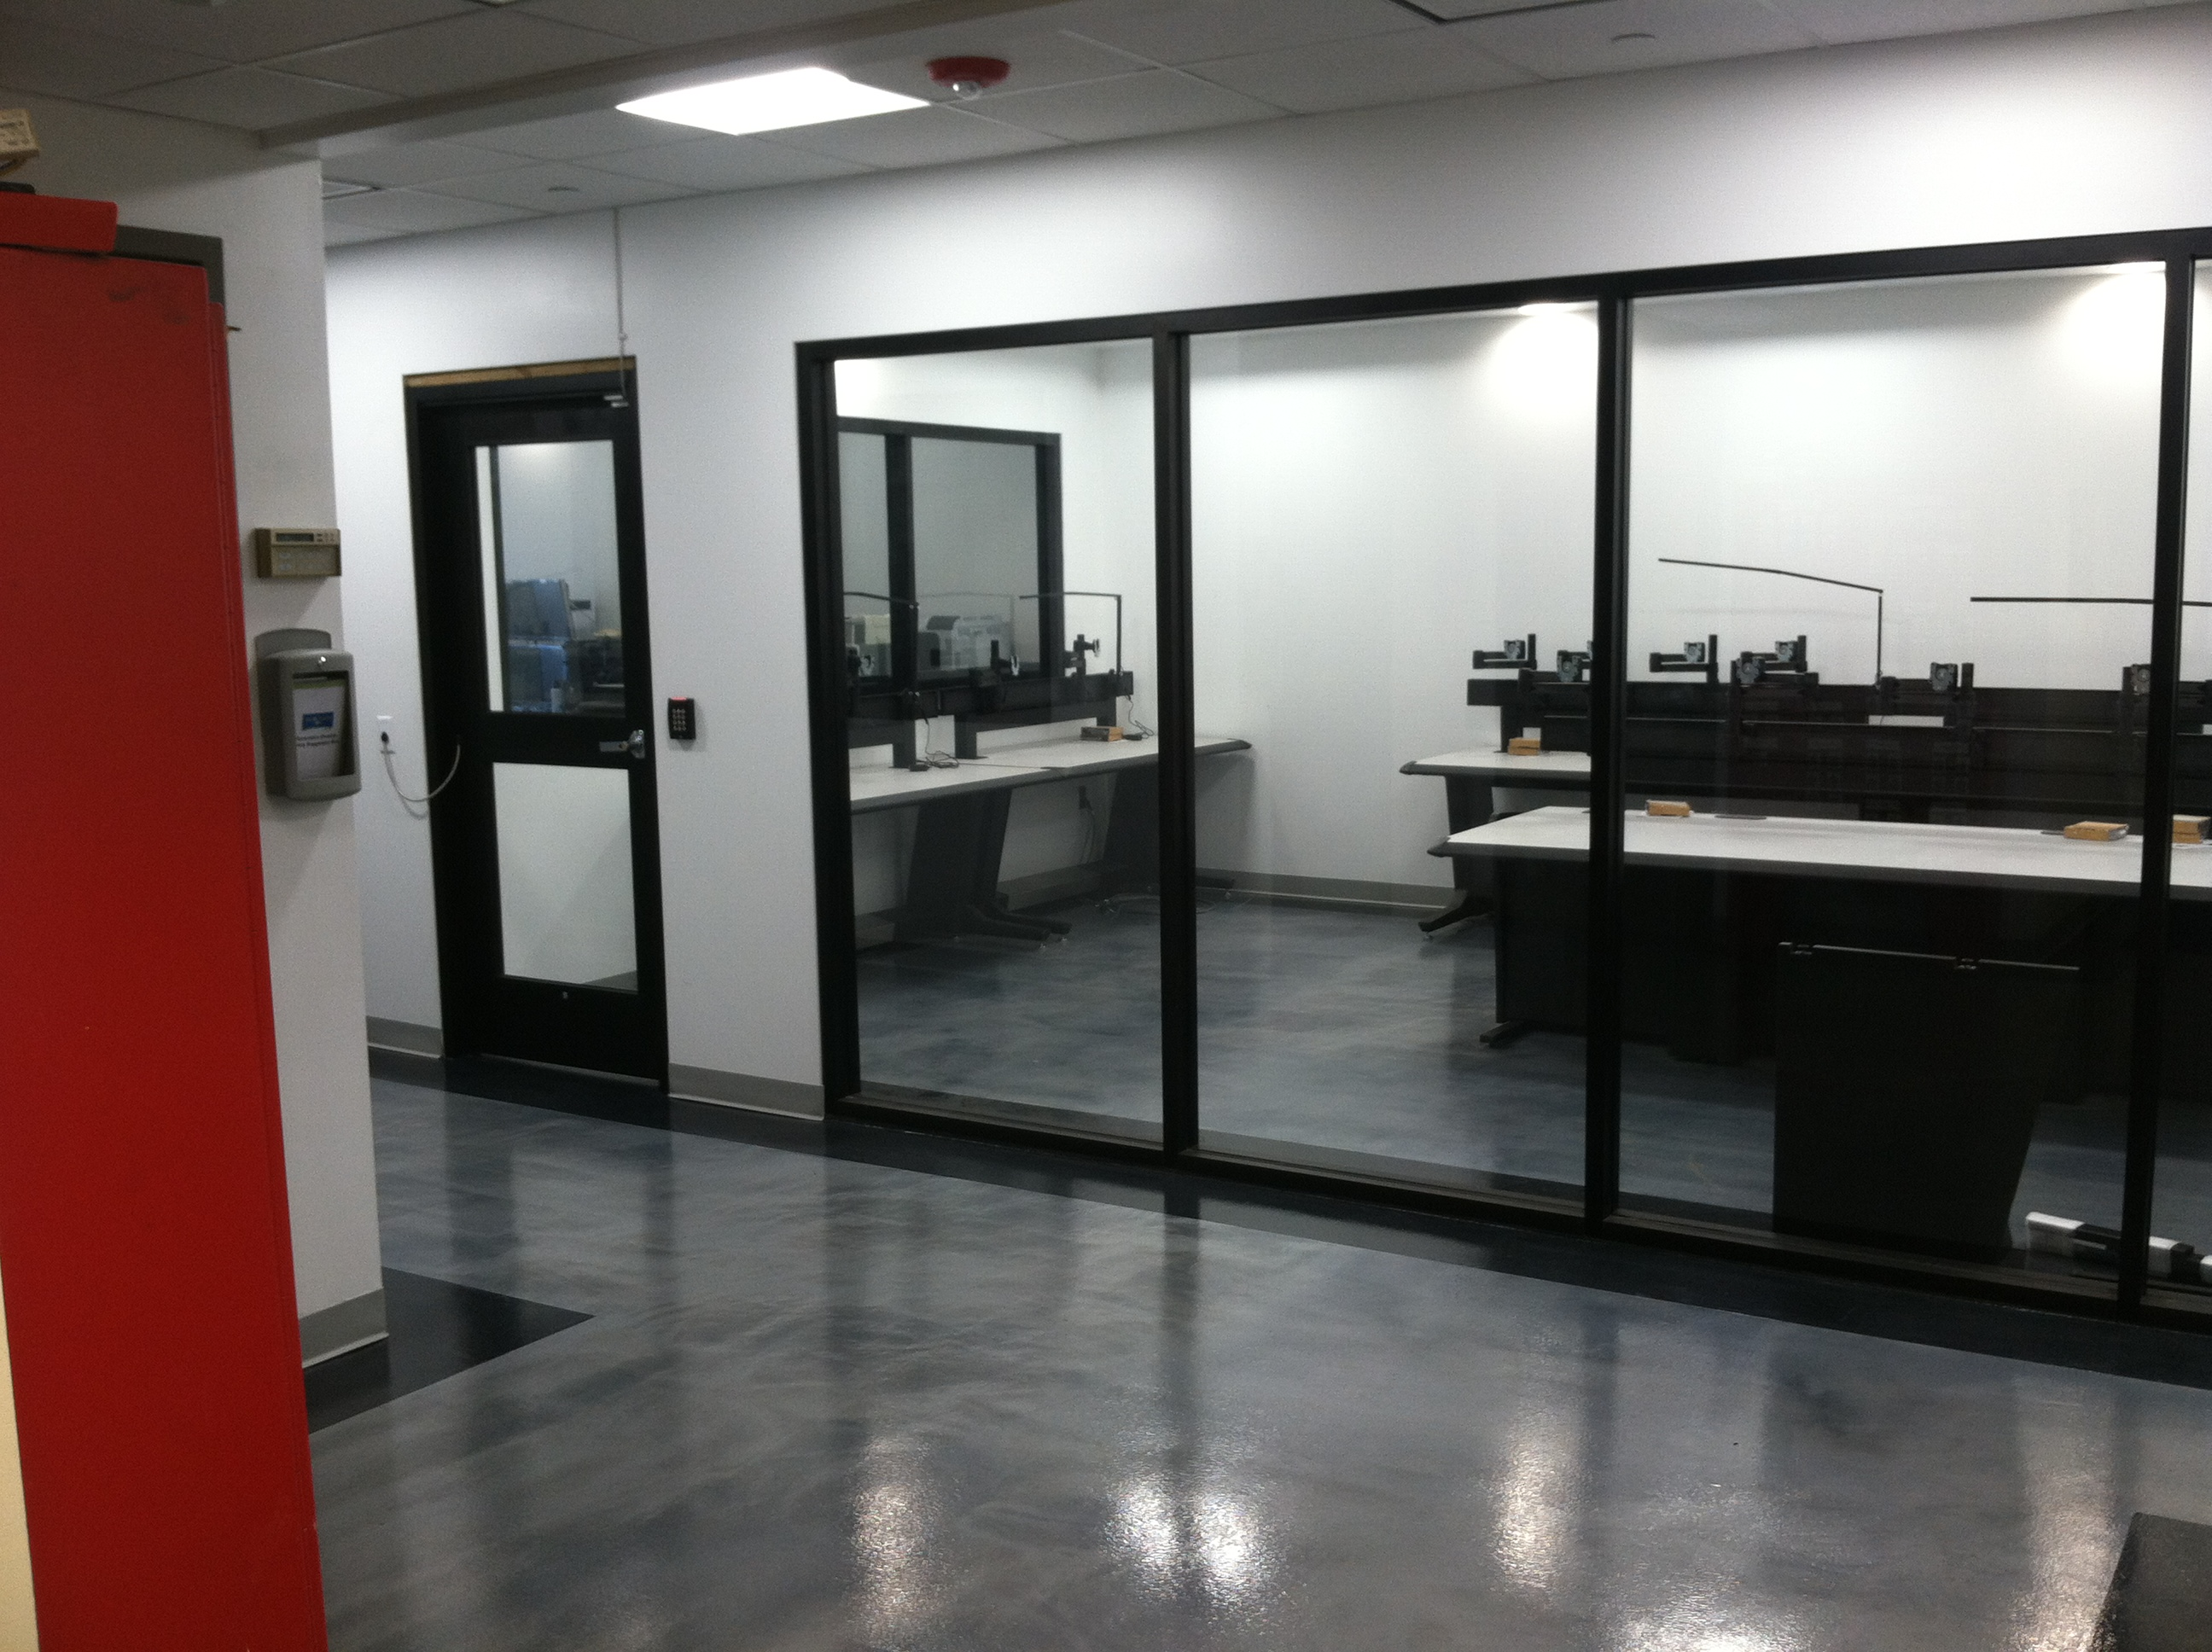 Sibley Generating Station Control Room Expansion